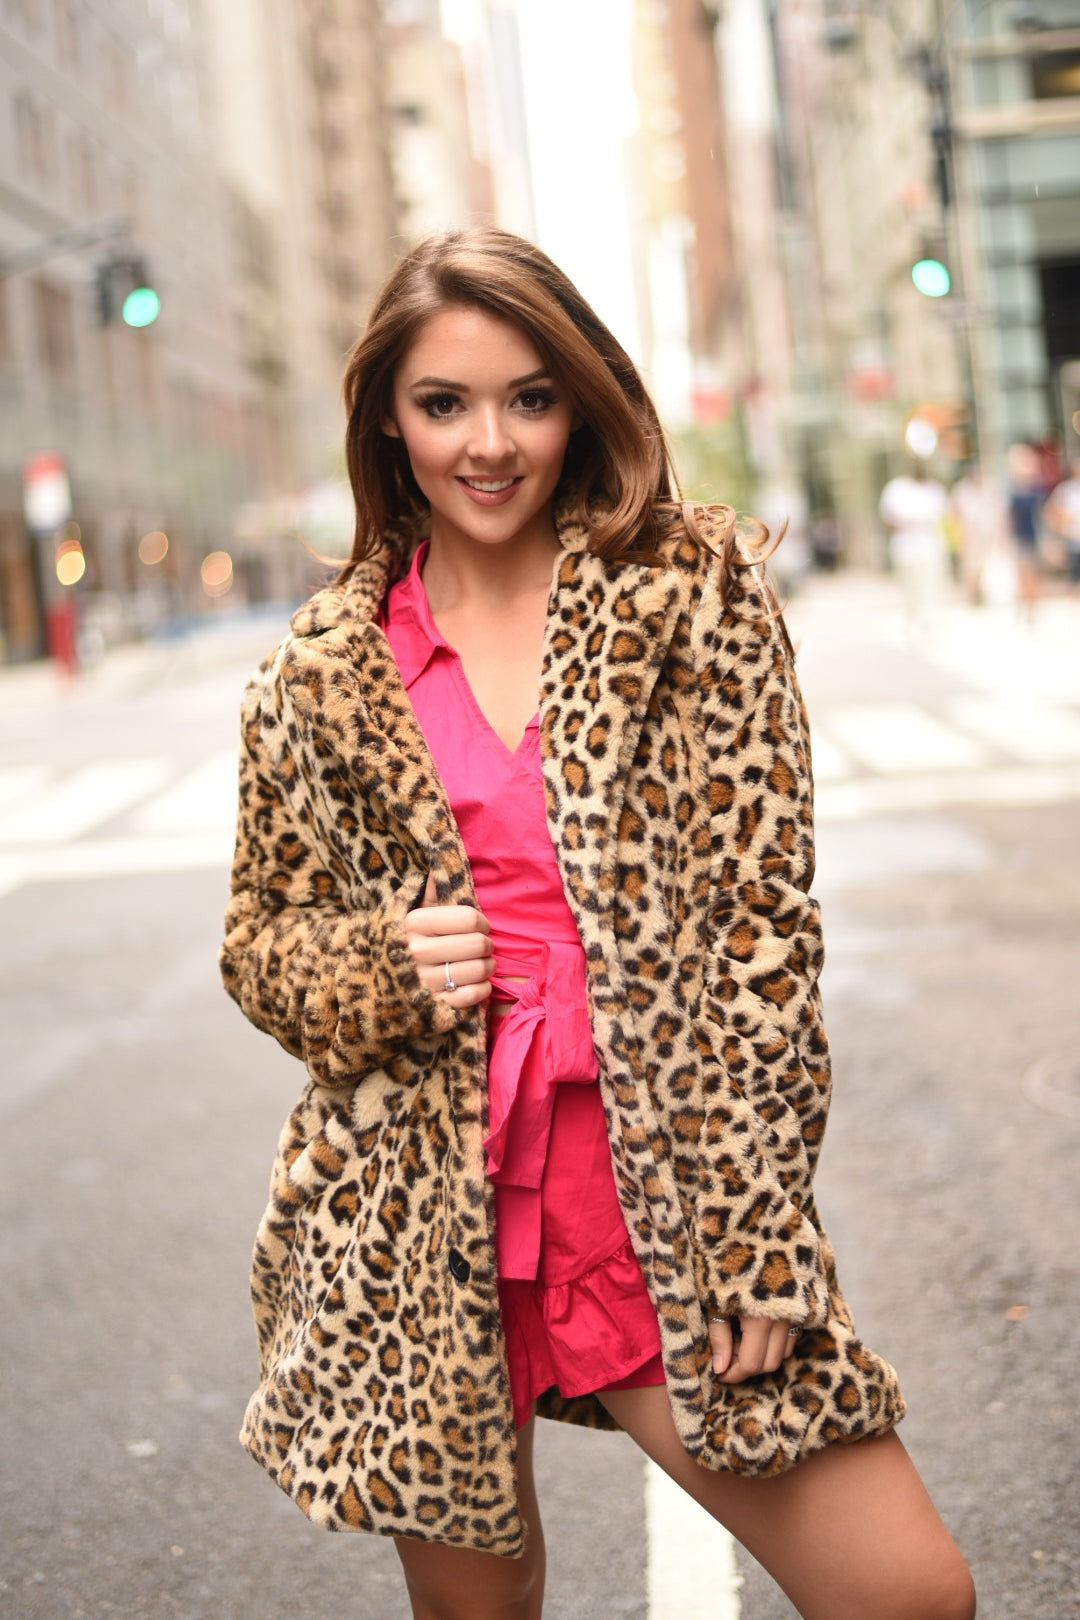 Girls Wanna Have Fun Leopard Coat - The Flawless Babe Boutique